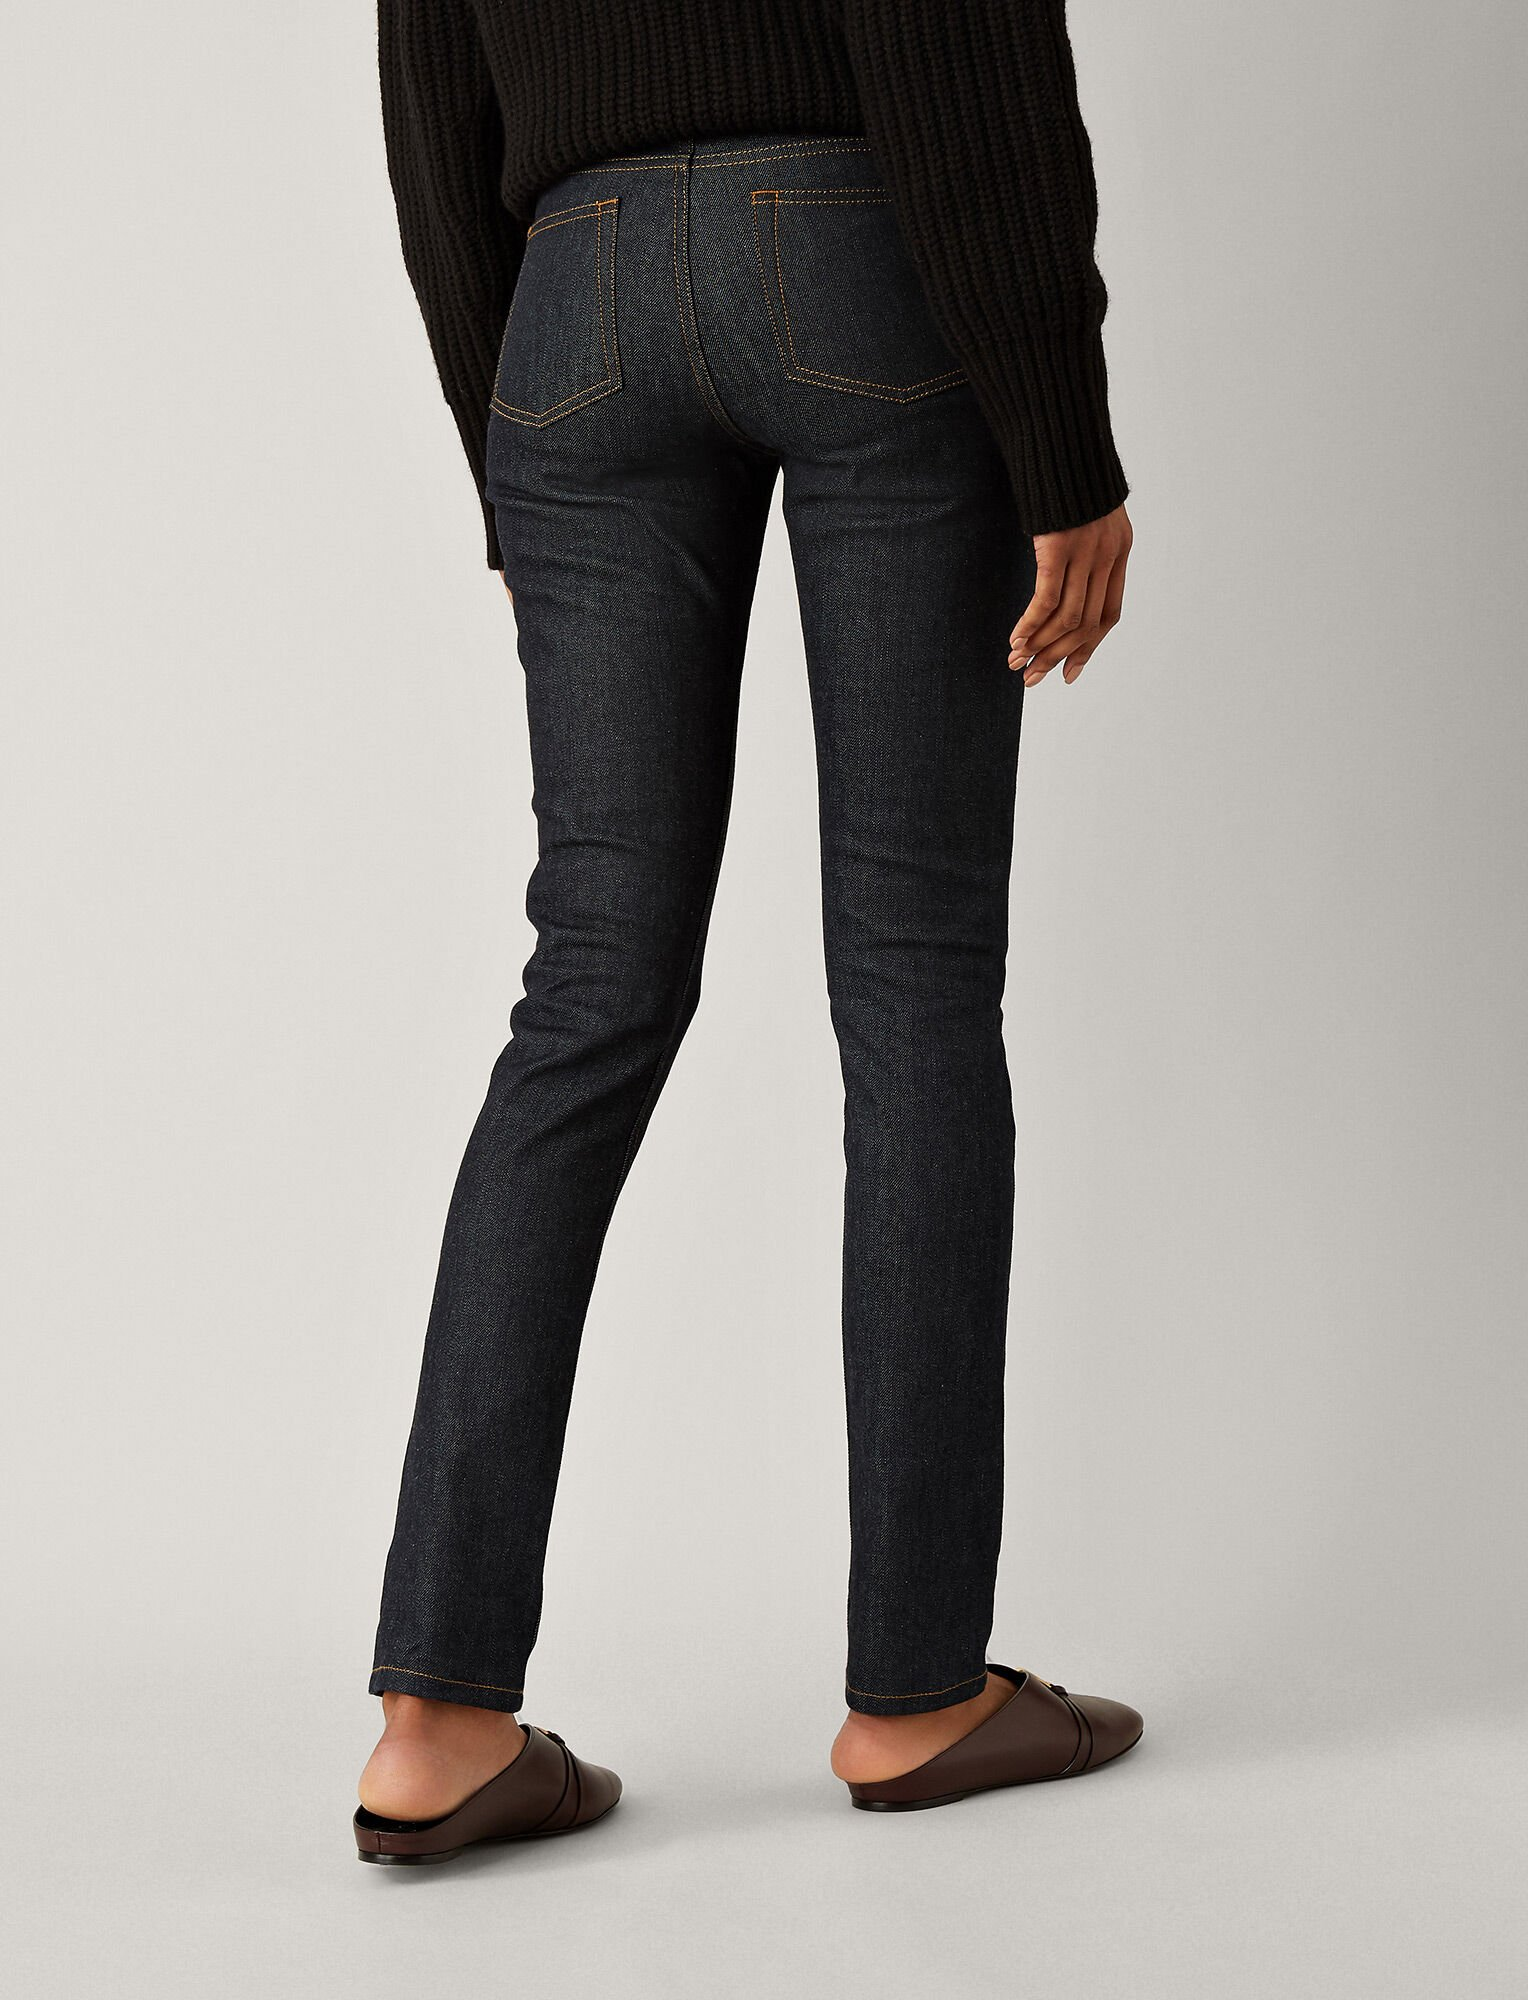 Joseph, Pantalon Cloud en denim stretch, in PURE INDIGO